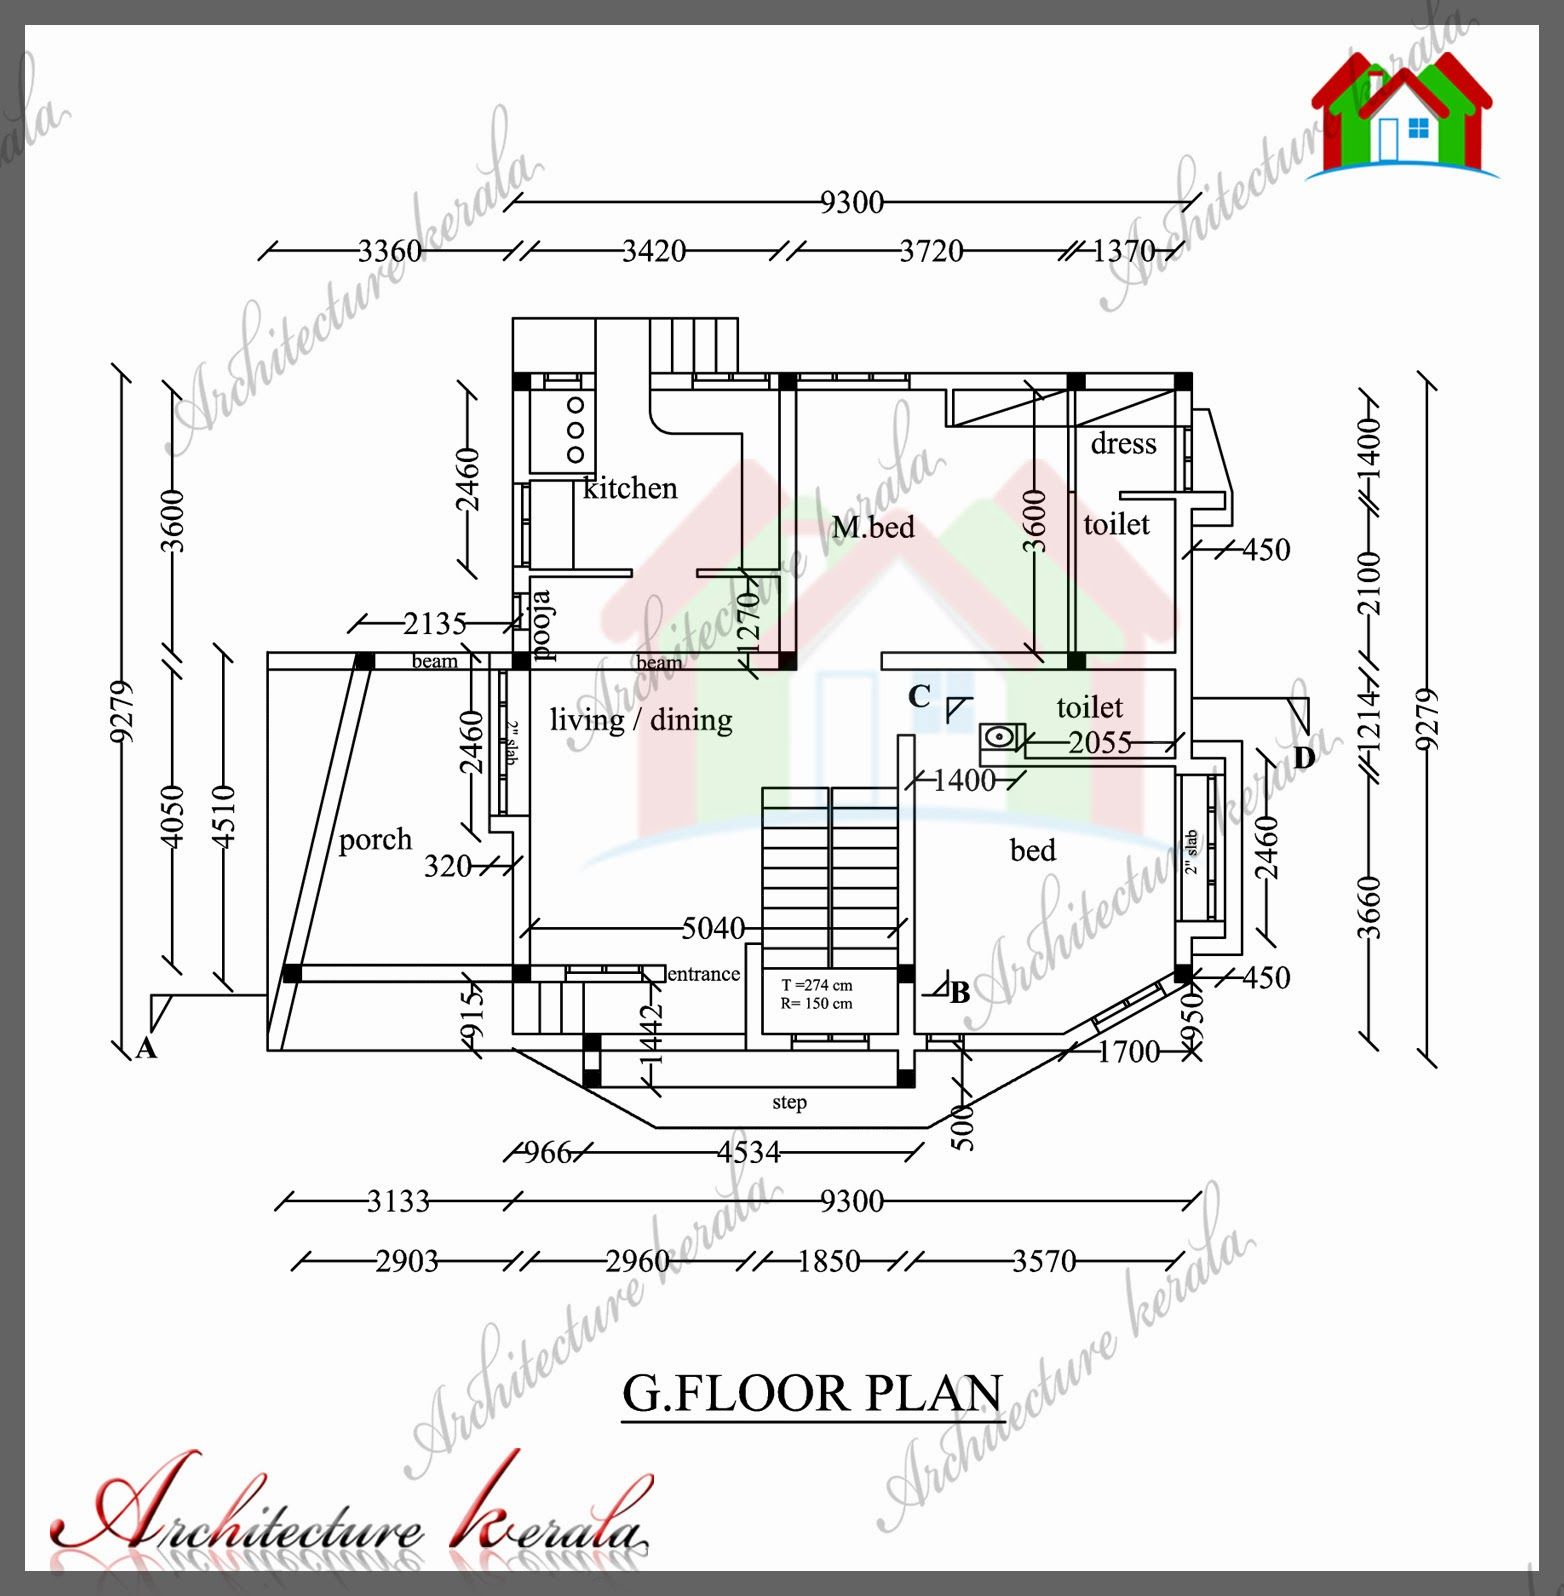 Kerala House Plan With All Room Measurements Detailed House Plan With Dimensions Four Bedroom House Plan With Dimensio House Plans How To Plan 1000 Sq Ft House